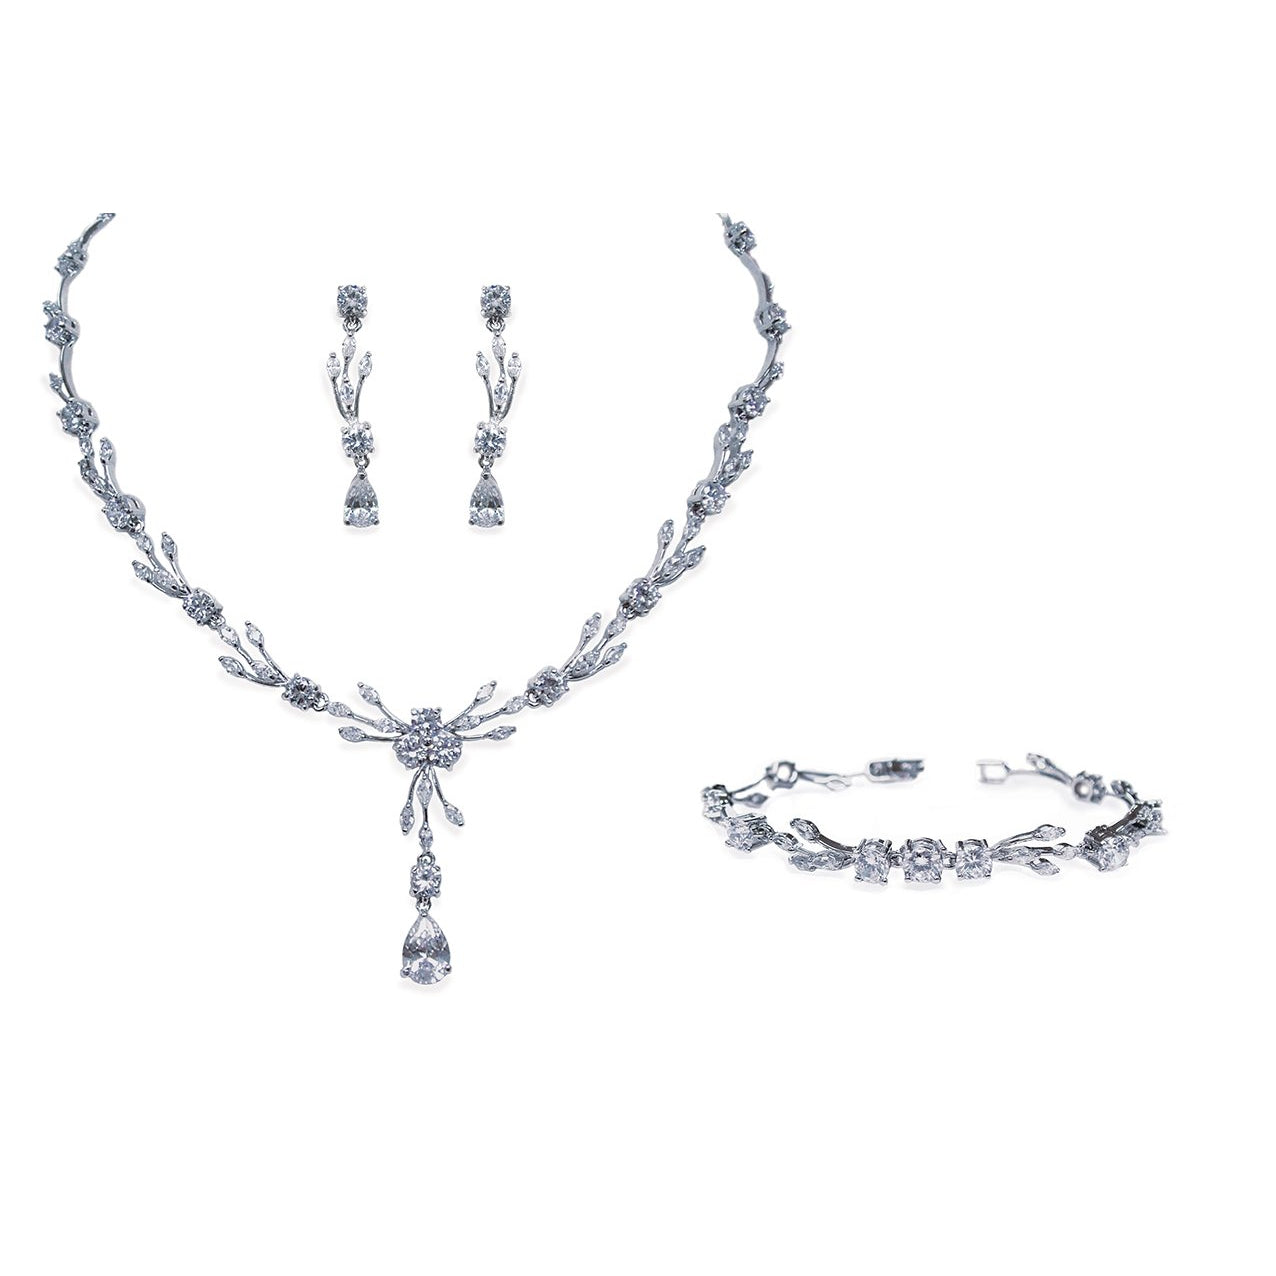 Parure Collier - Boucles d'oreilles - Bracelet<br>Mayfair - MP Paris